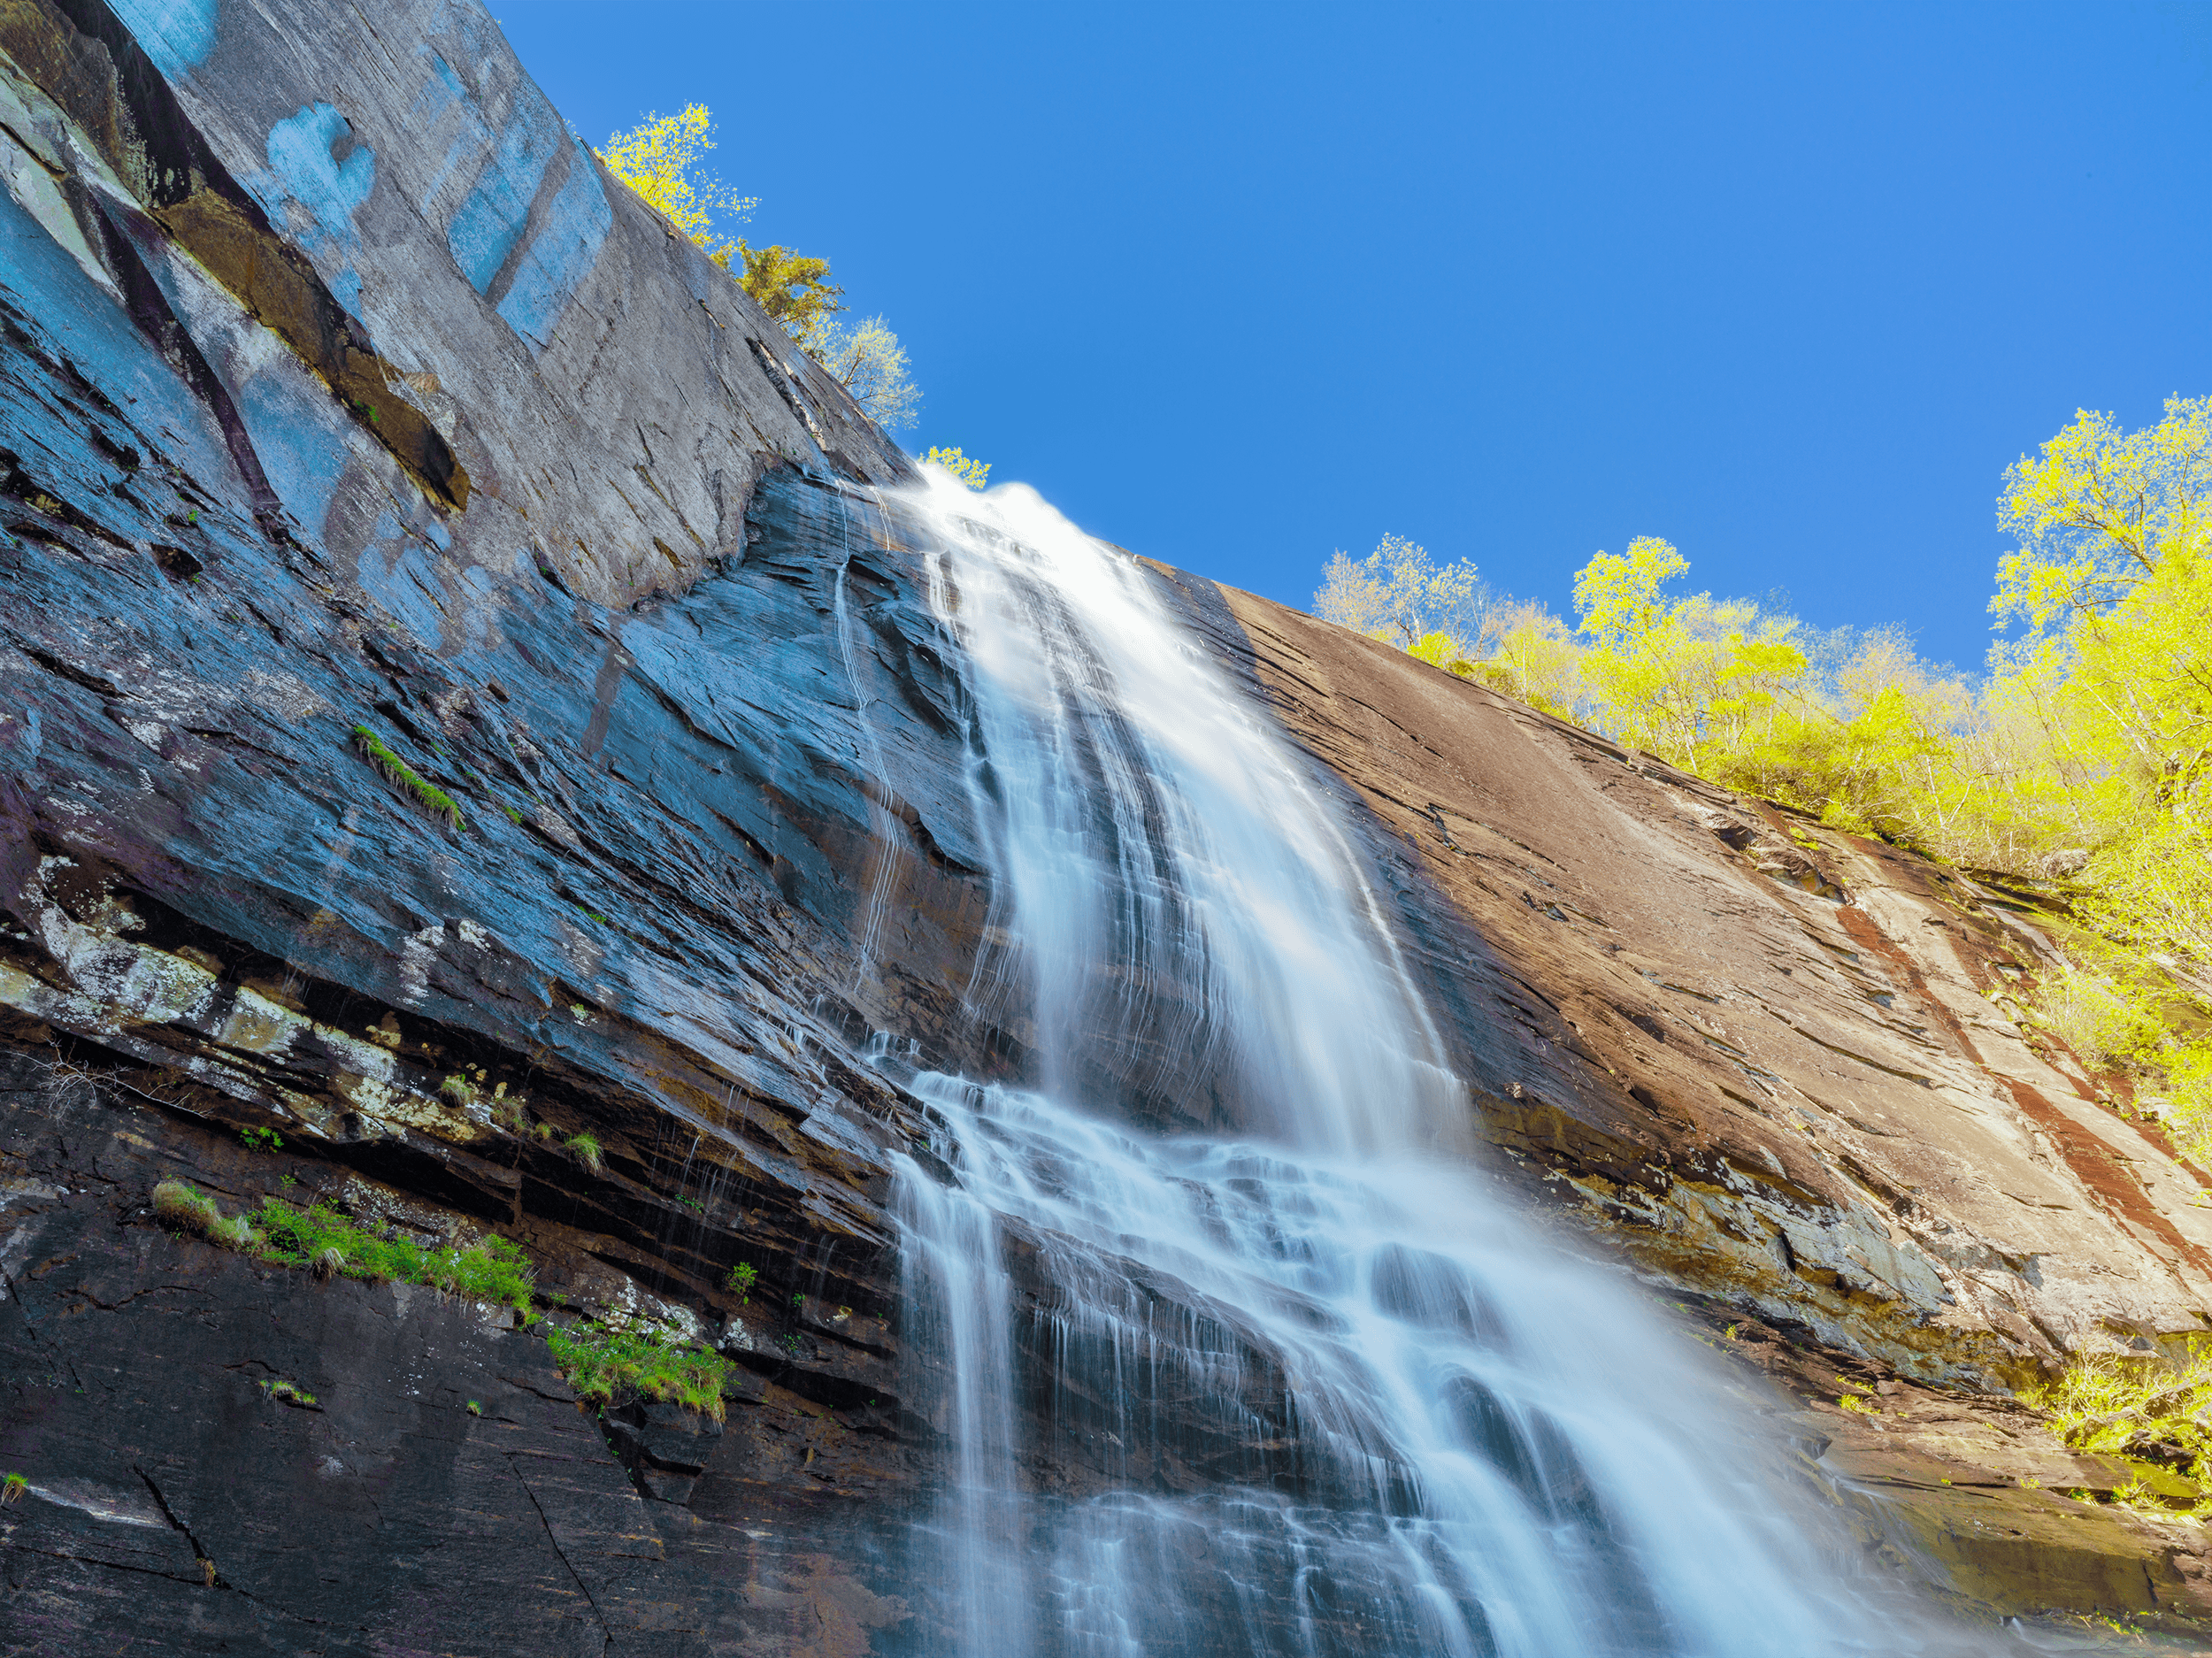 As the viewing platform is almost below  Hickory Nut Falls , it offers a dramatic perspective looking up the falls, while feeling the refreshing cooling mist from the water on a hot day.